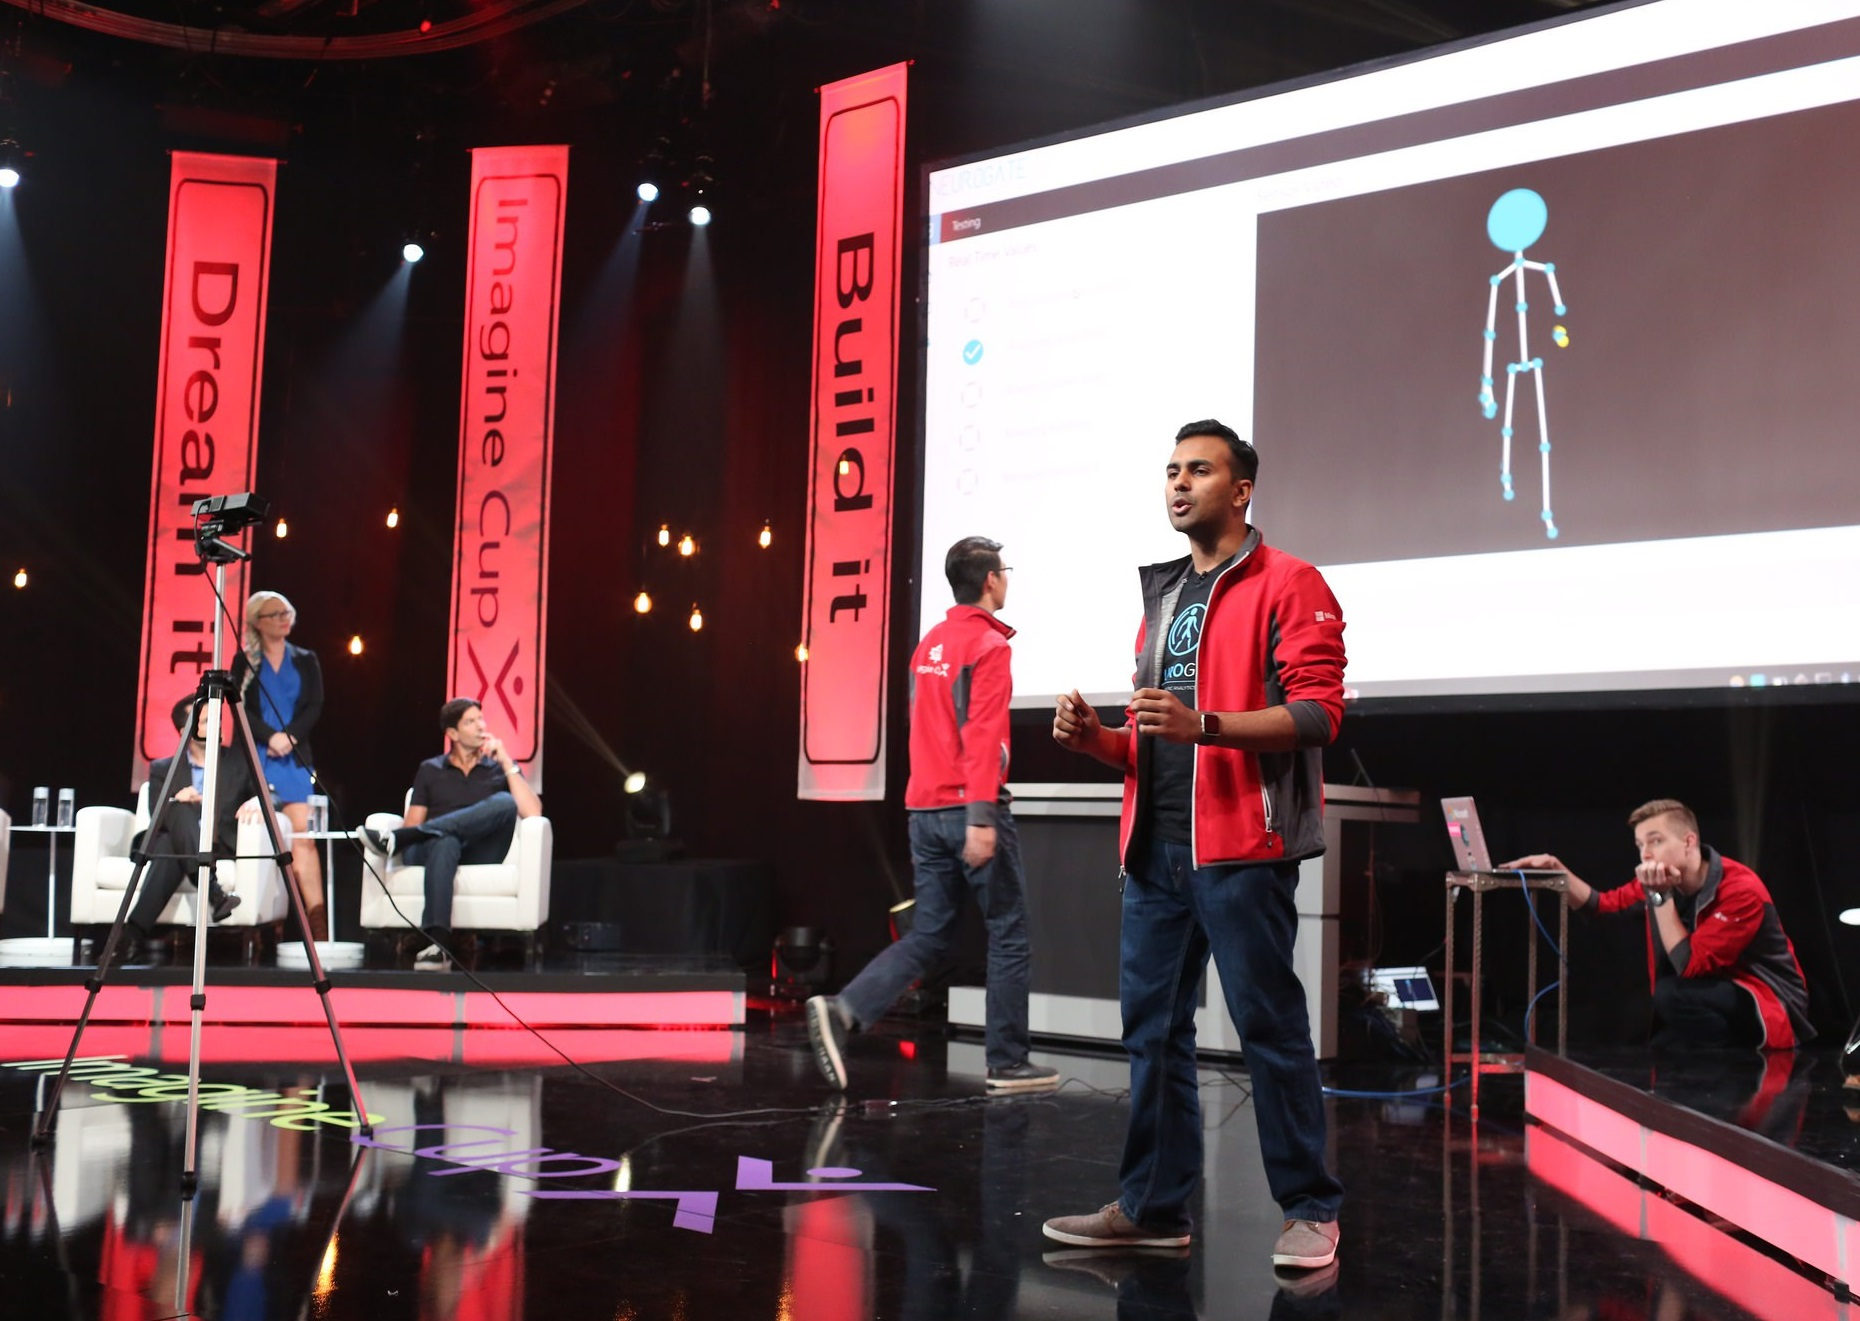 Members of Neurogate make their pitch and give a demonstration during the recent Imagine Cup international finals in Redmond, Washington.